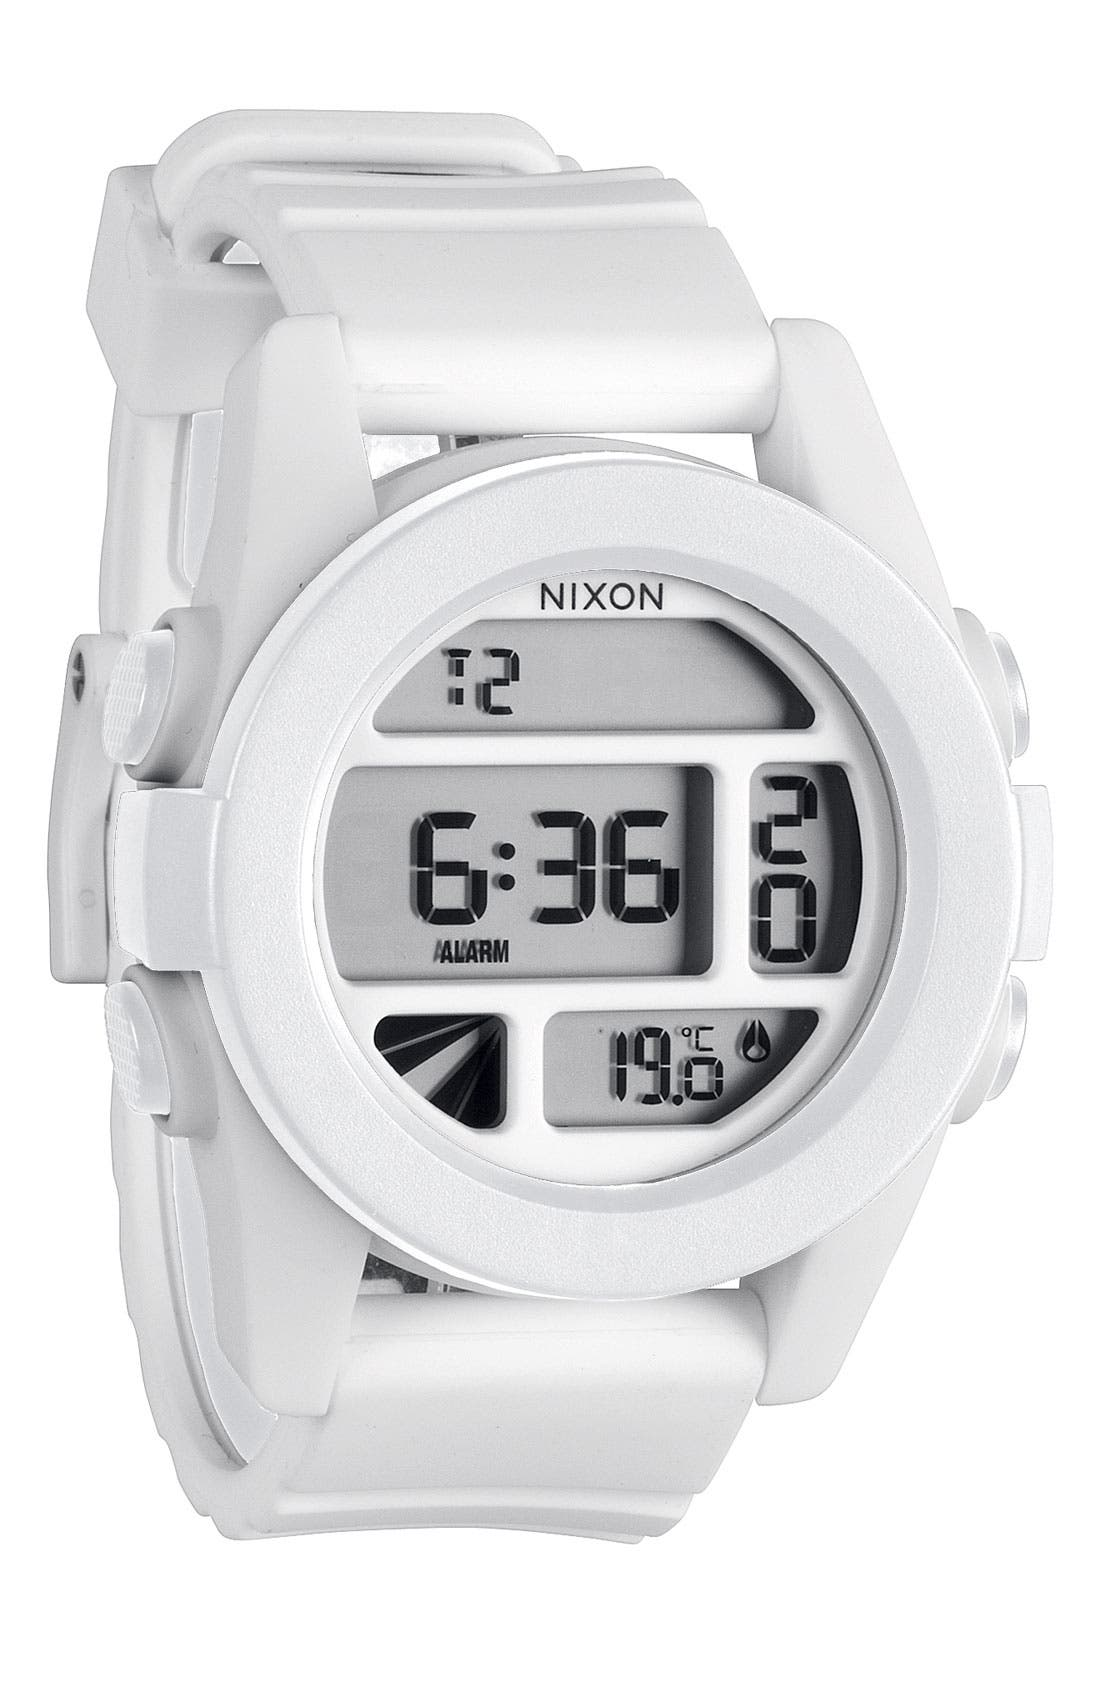 Main Image - Nixon 'The Unit' Round Digital Watch, 44mm